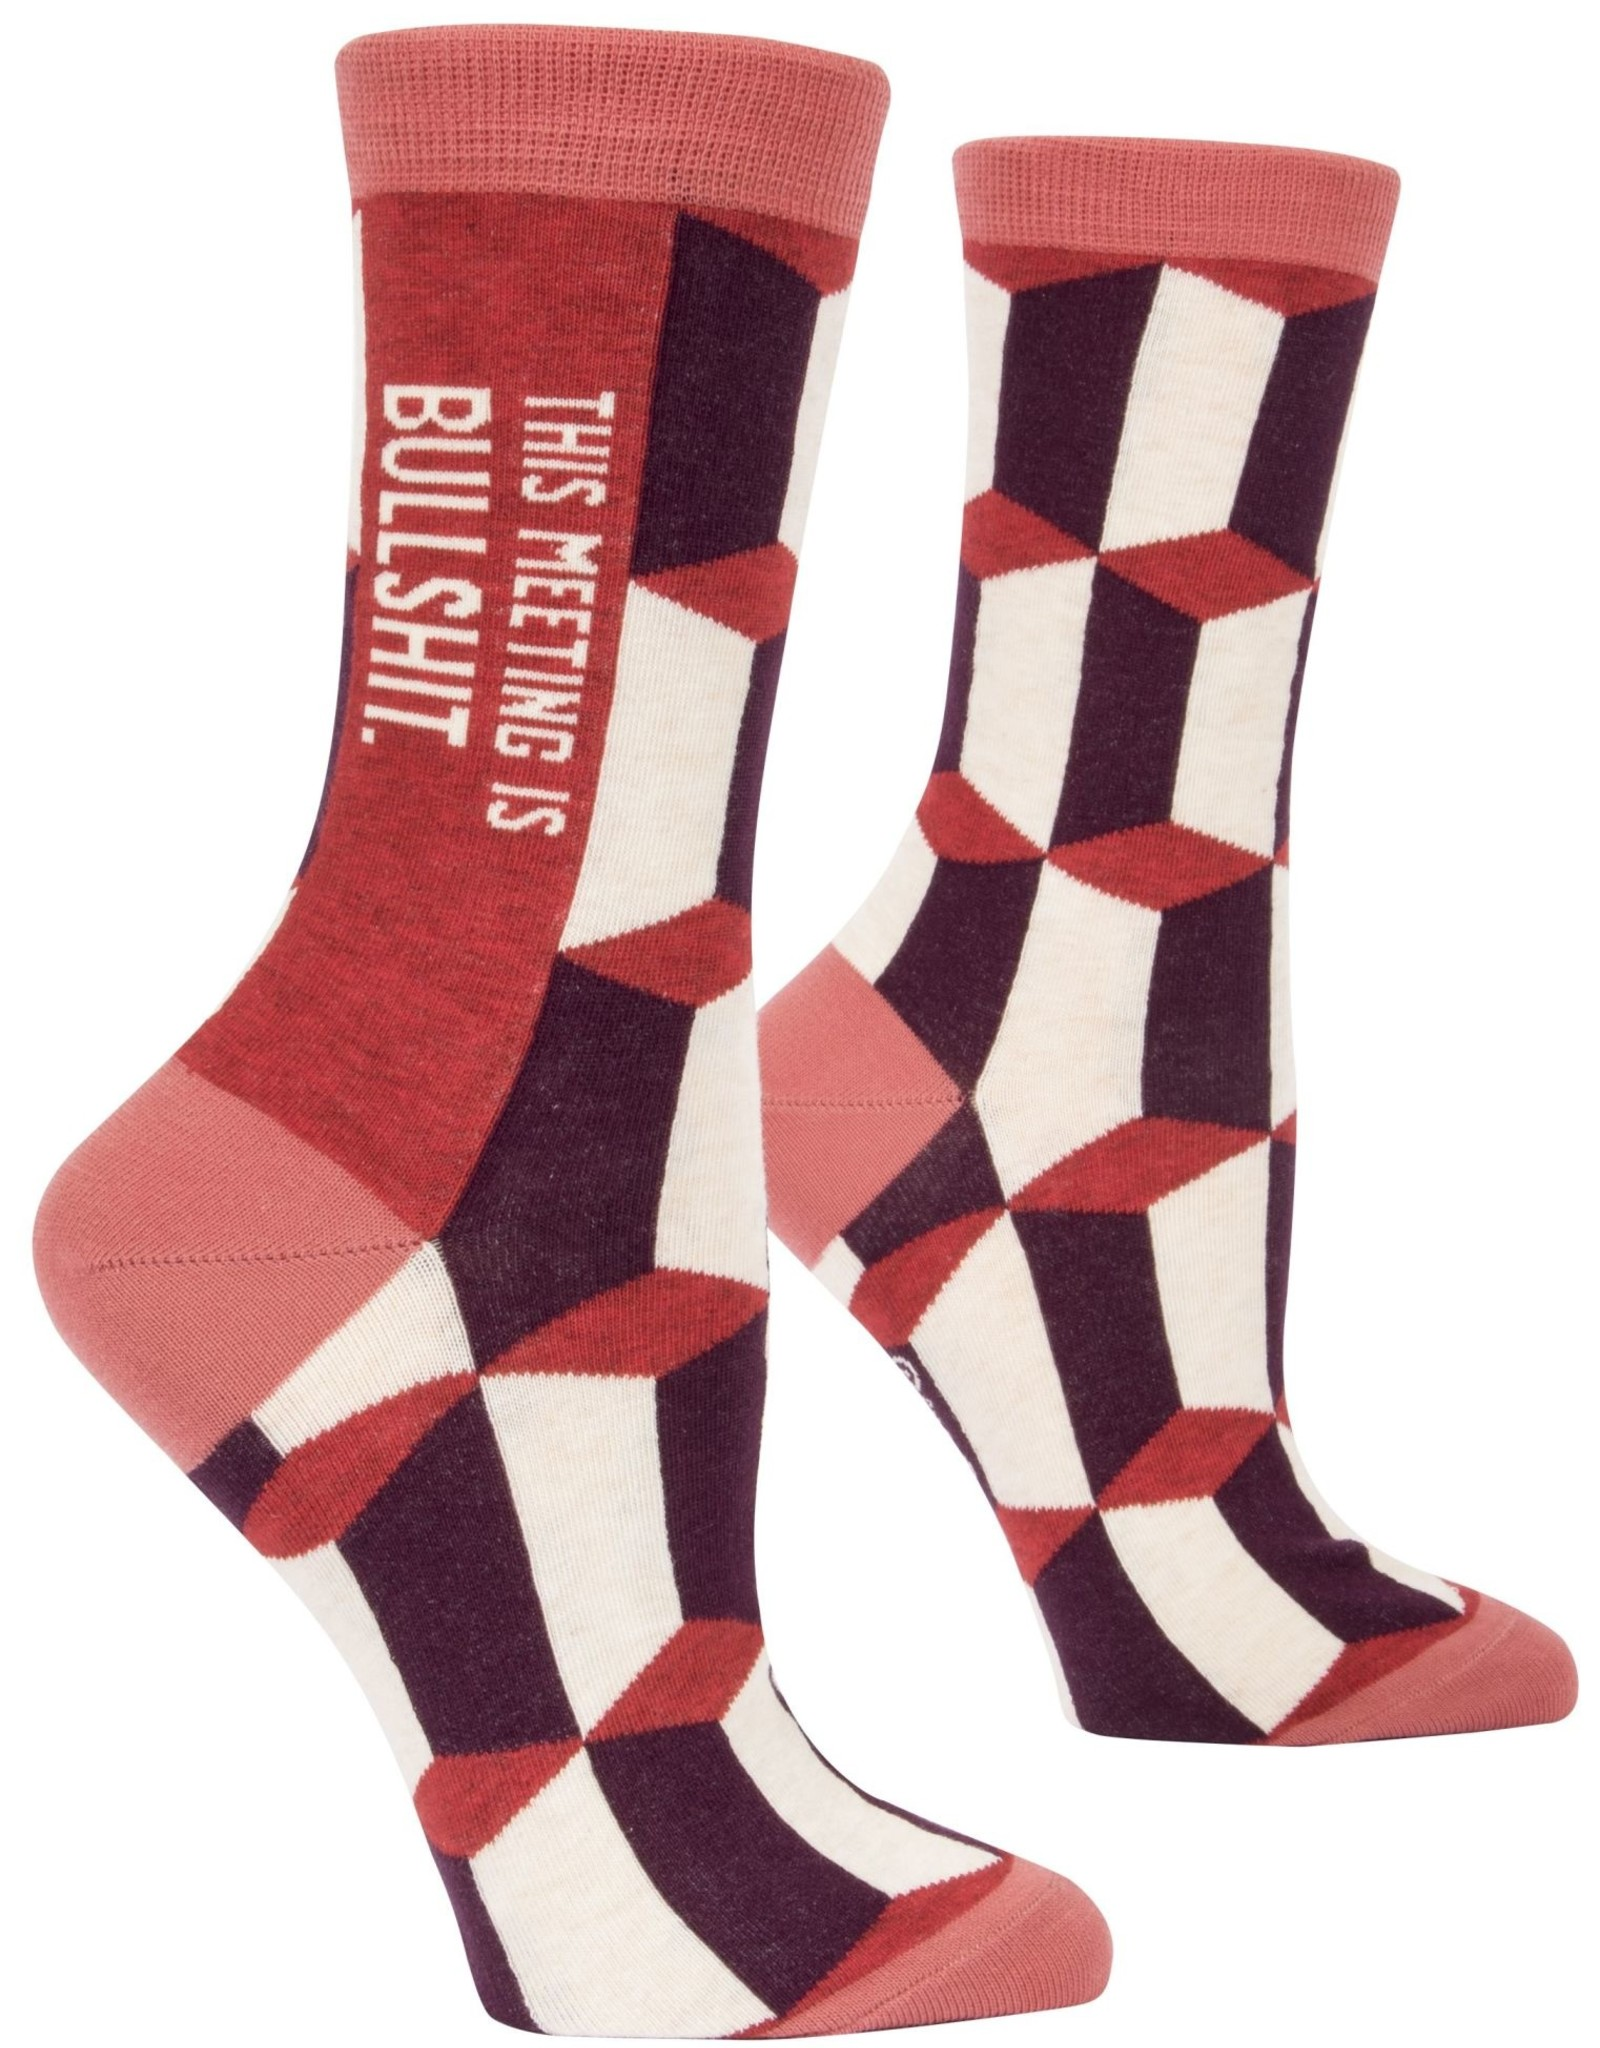 Meeting is Bullshit Women's Crew Socks